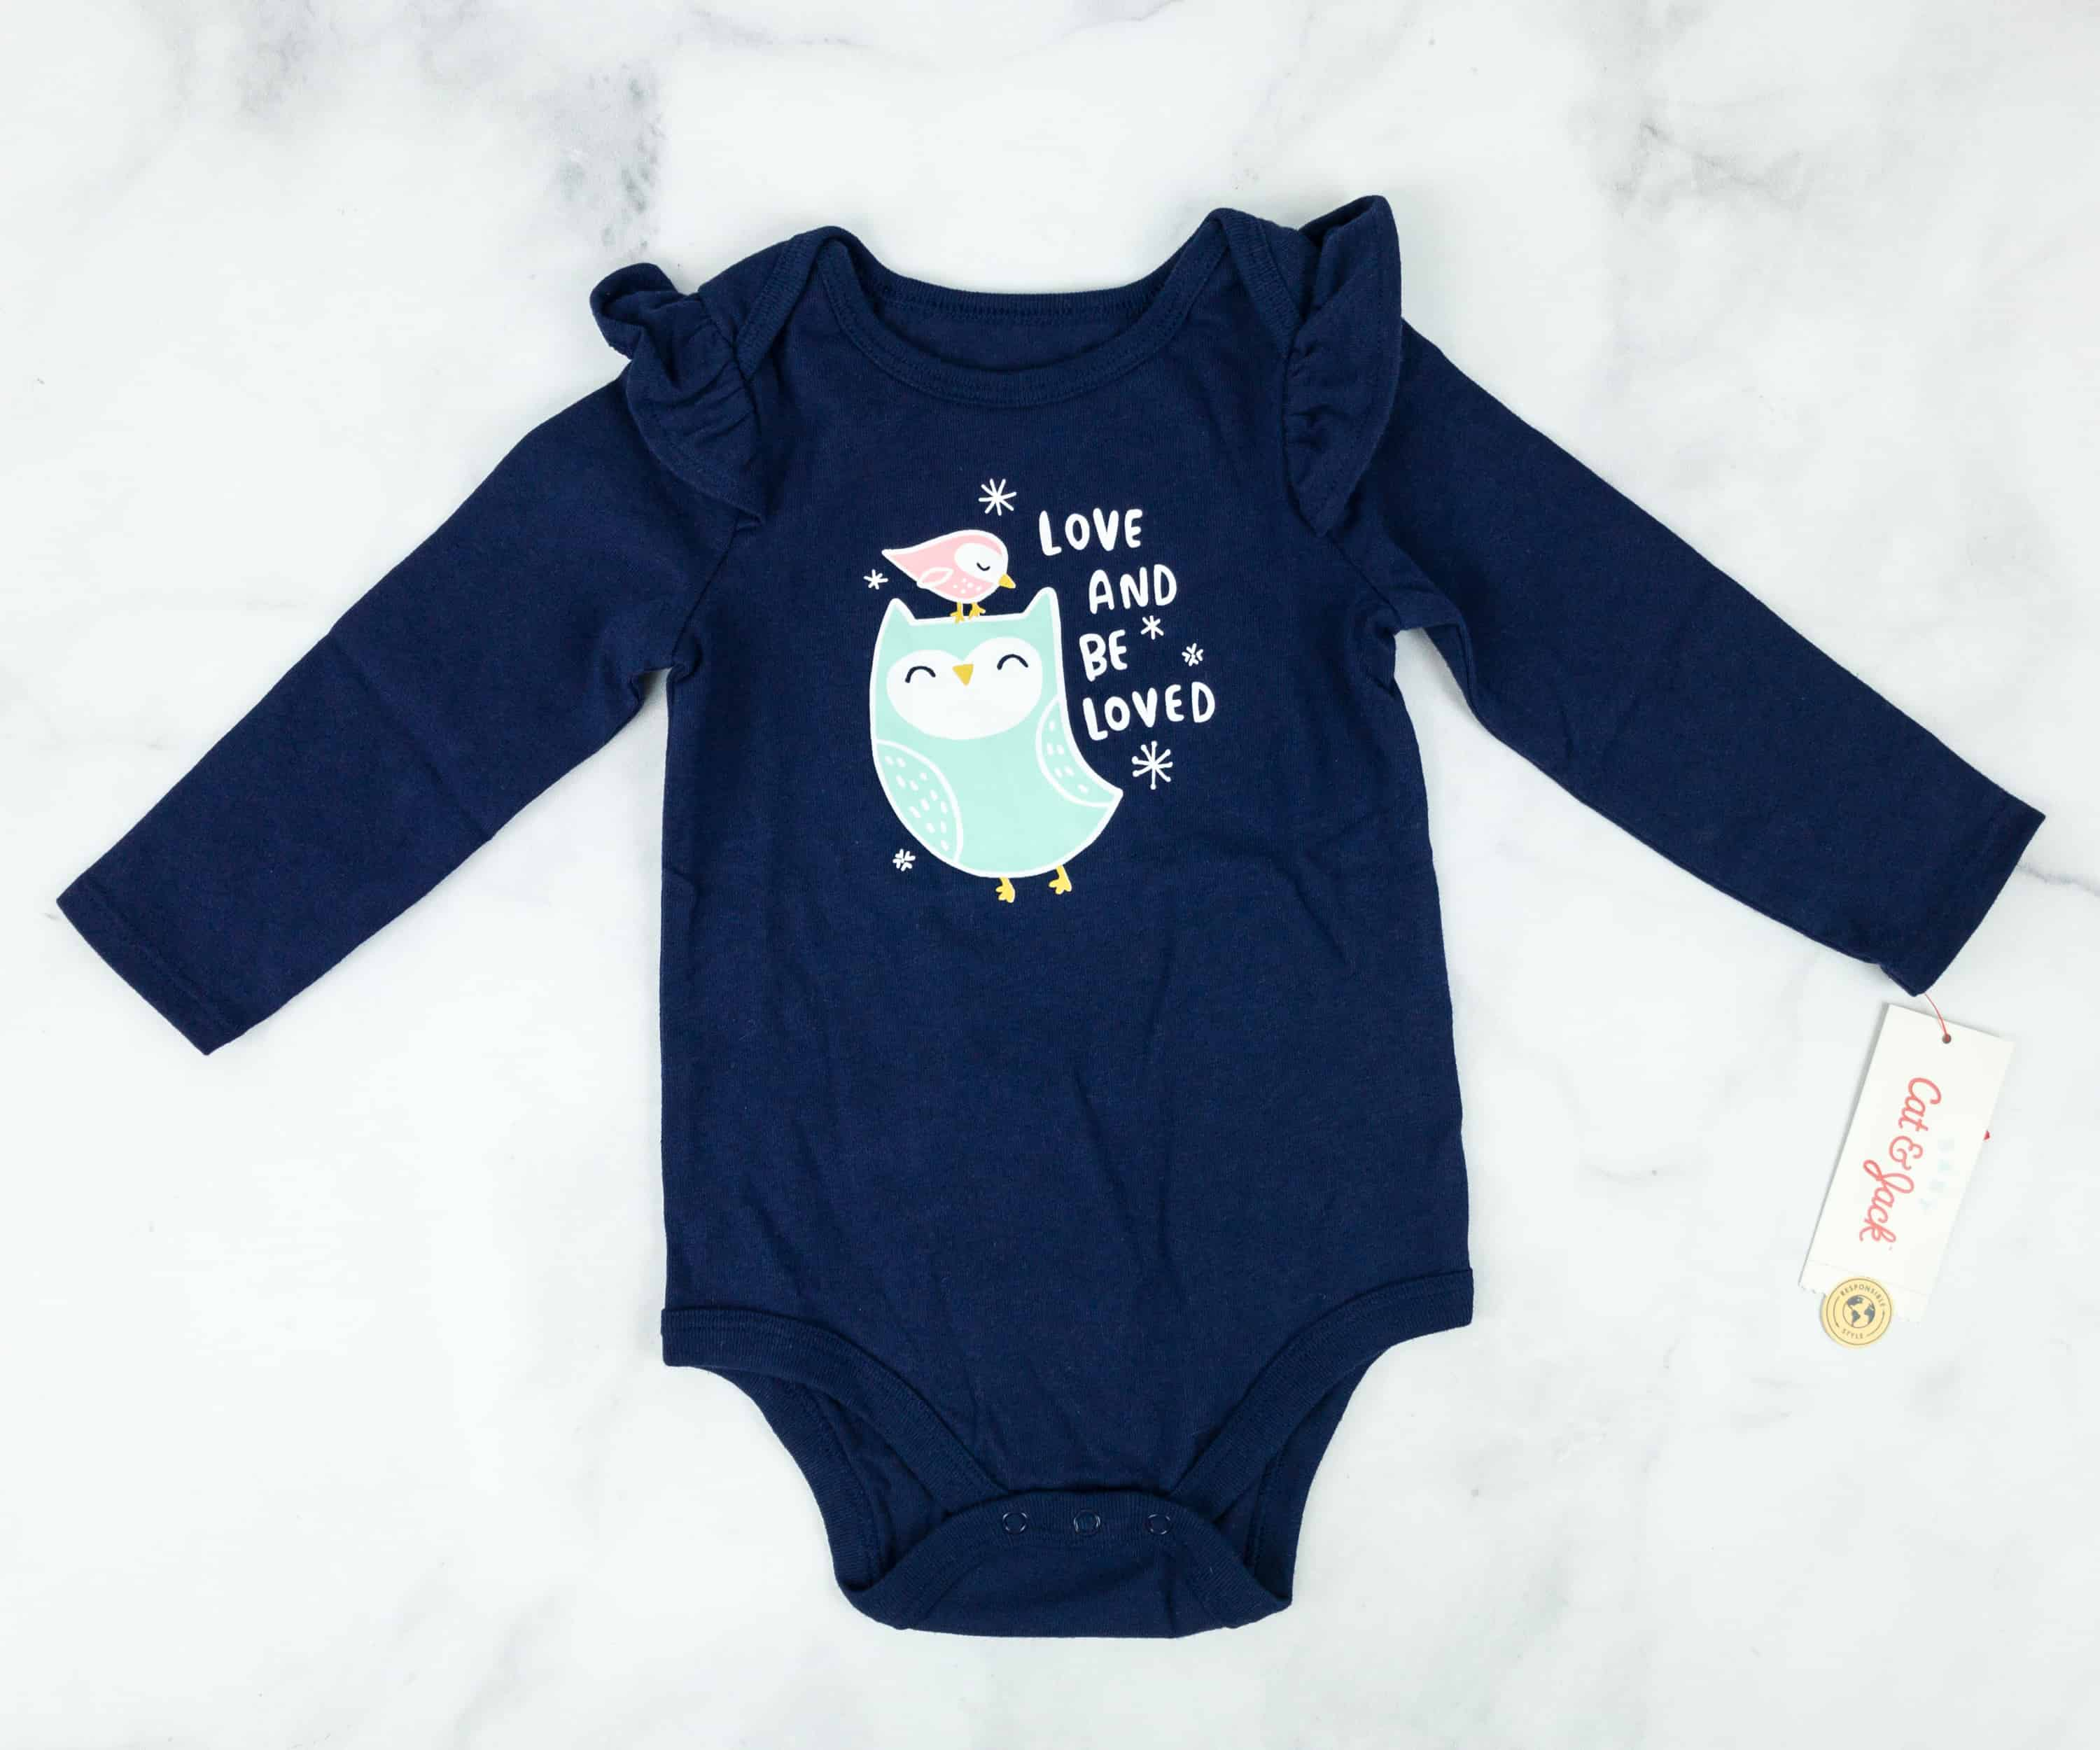 960317f6ba20 Cat   Jack Baby Girl s Loved And Be Loved Bodysuit. It s a blue bodysuit